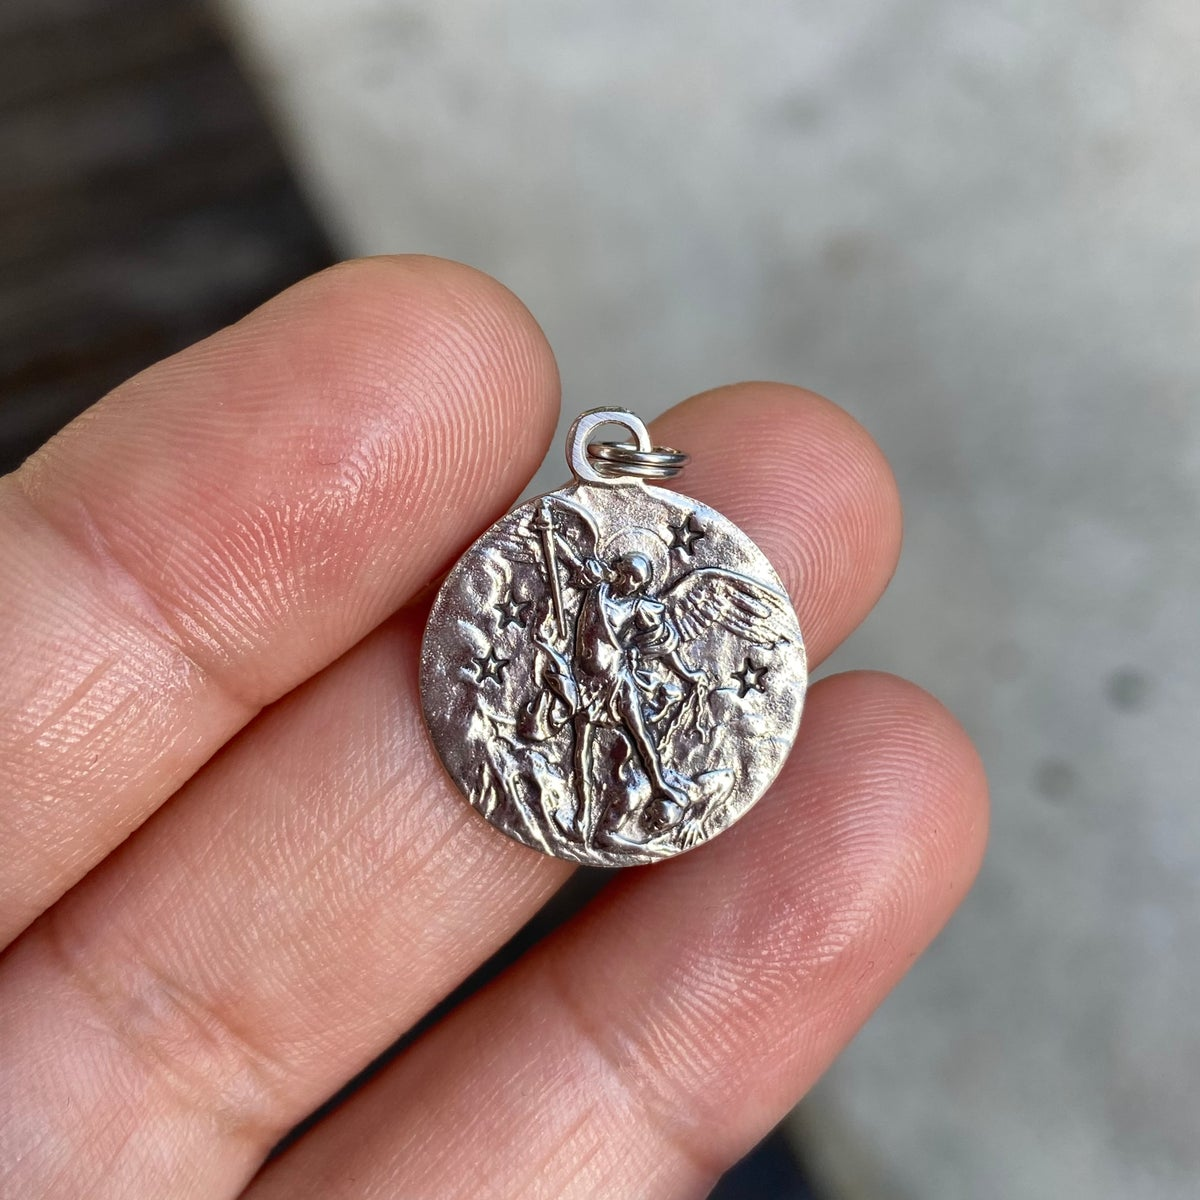 Image of san miguel charm